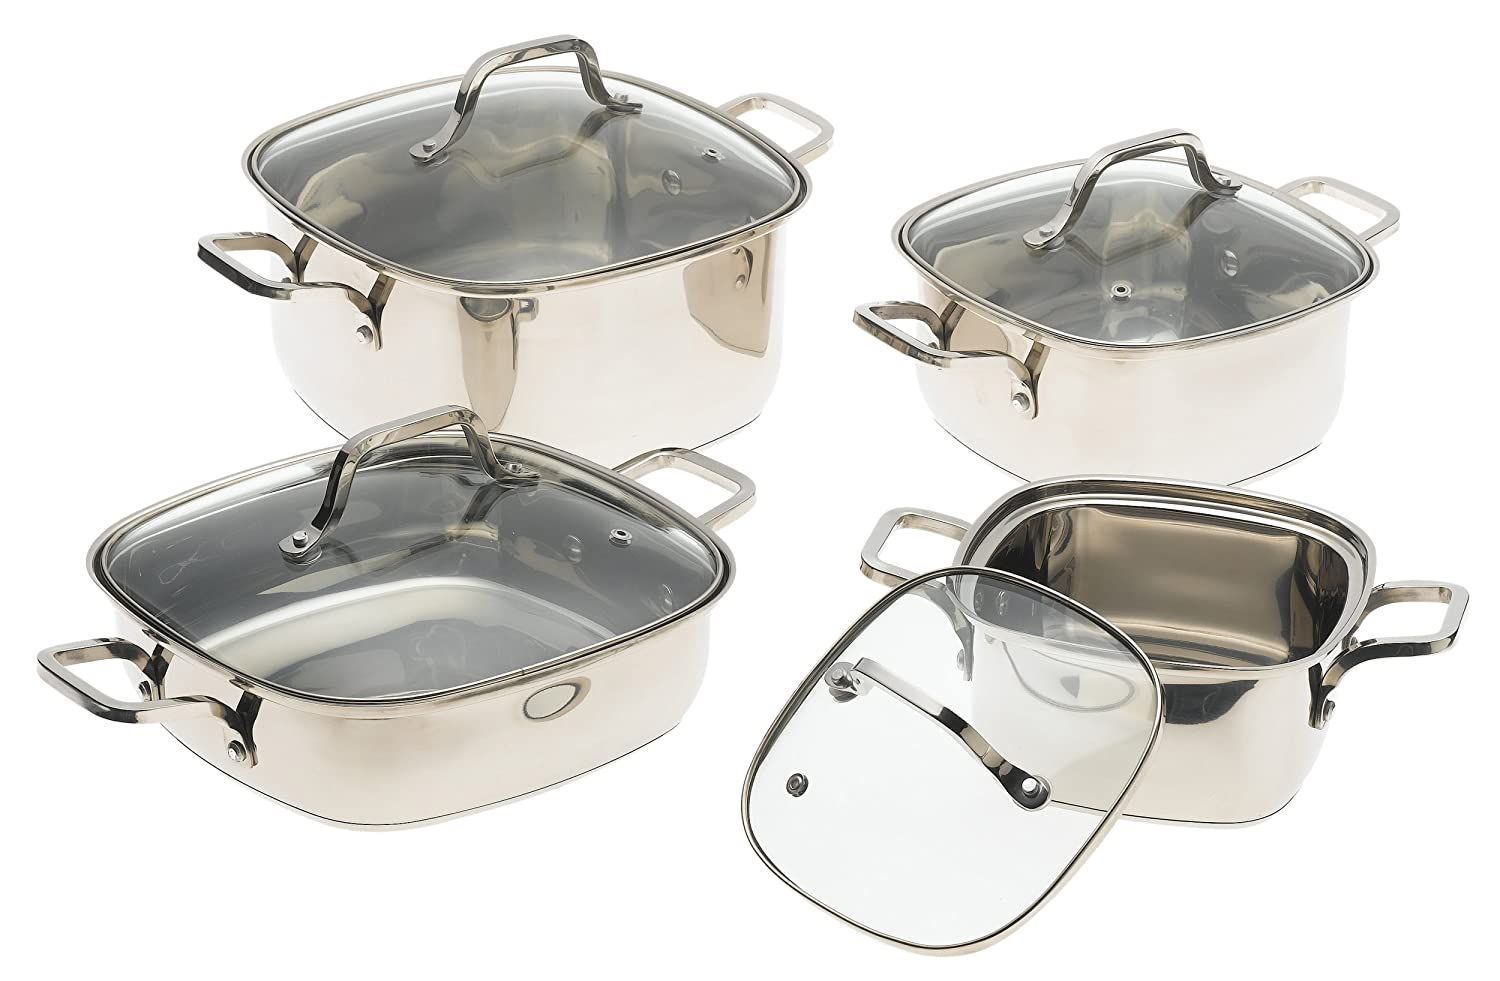 Amazon.com: Prime Cookware 8 Piece Square Stainless Steel Cookware ...